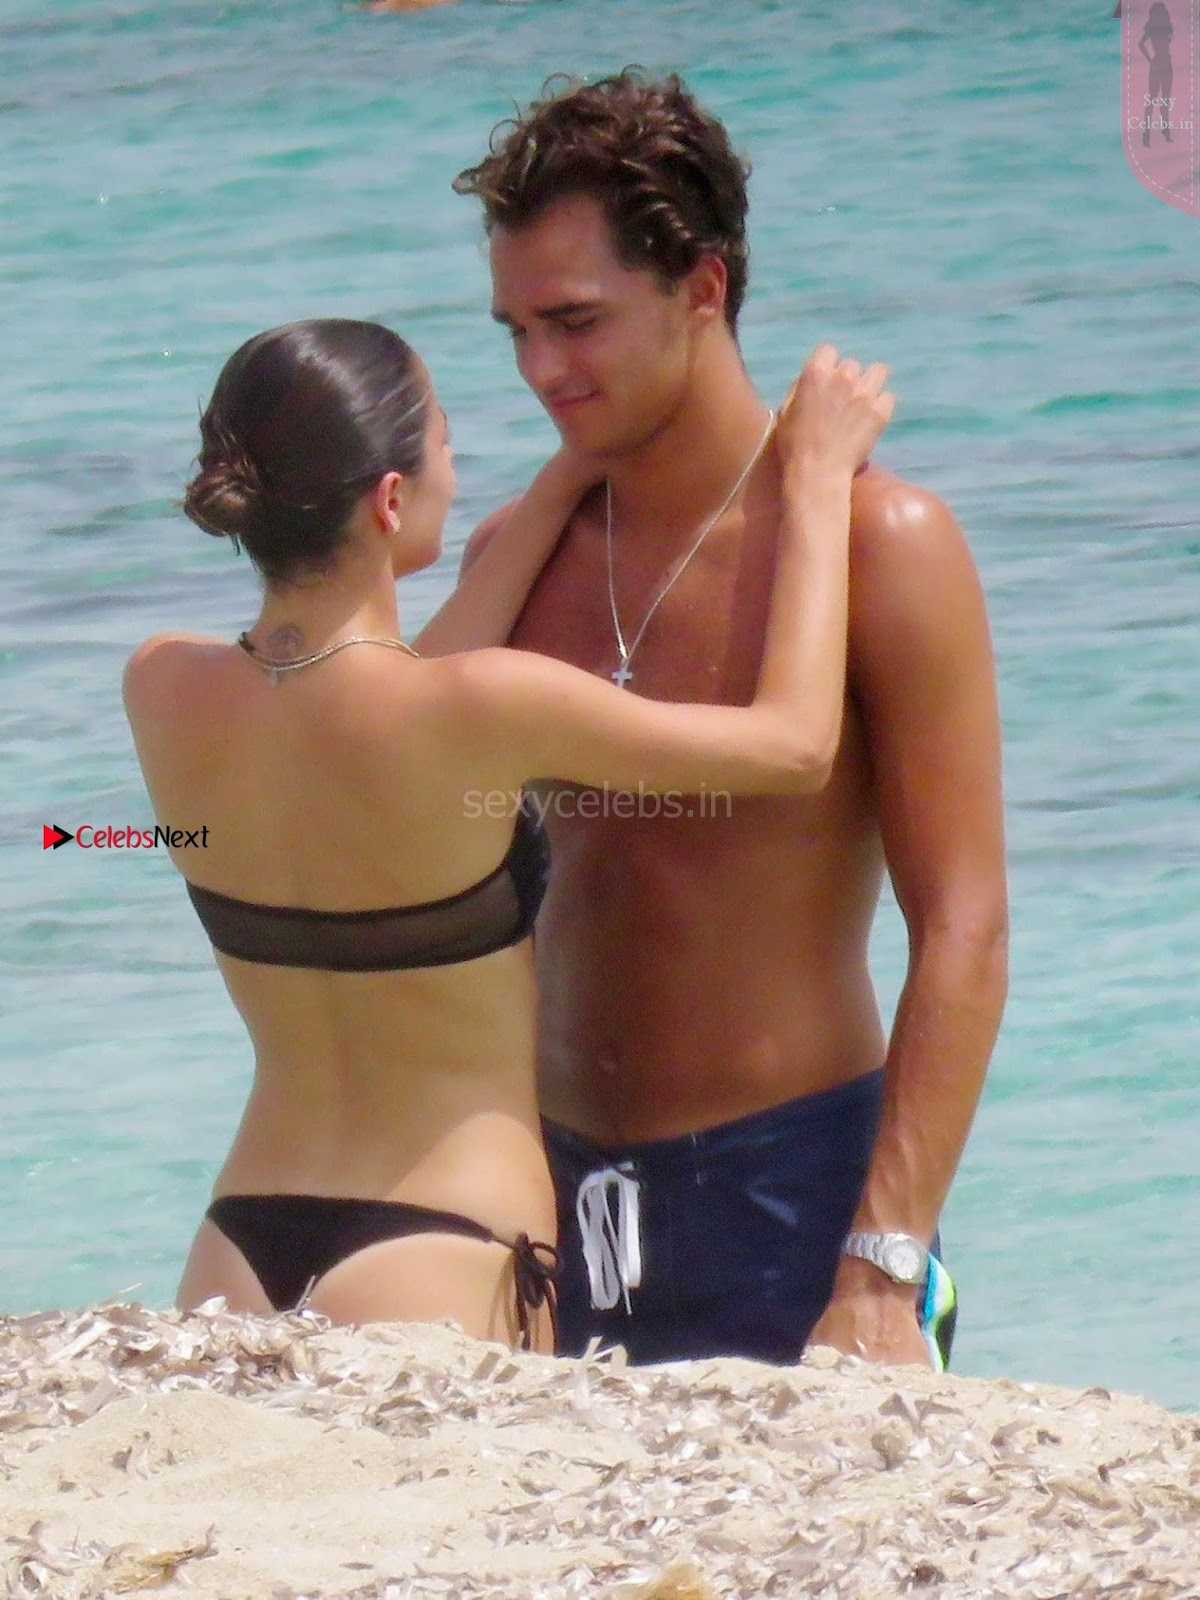 Martina Stoessel ins exy wet black tiny bikini boobs ass exposed with BF WOW Must see Beauty 03.08.3017